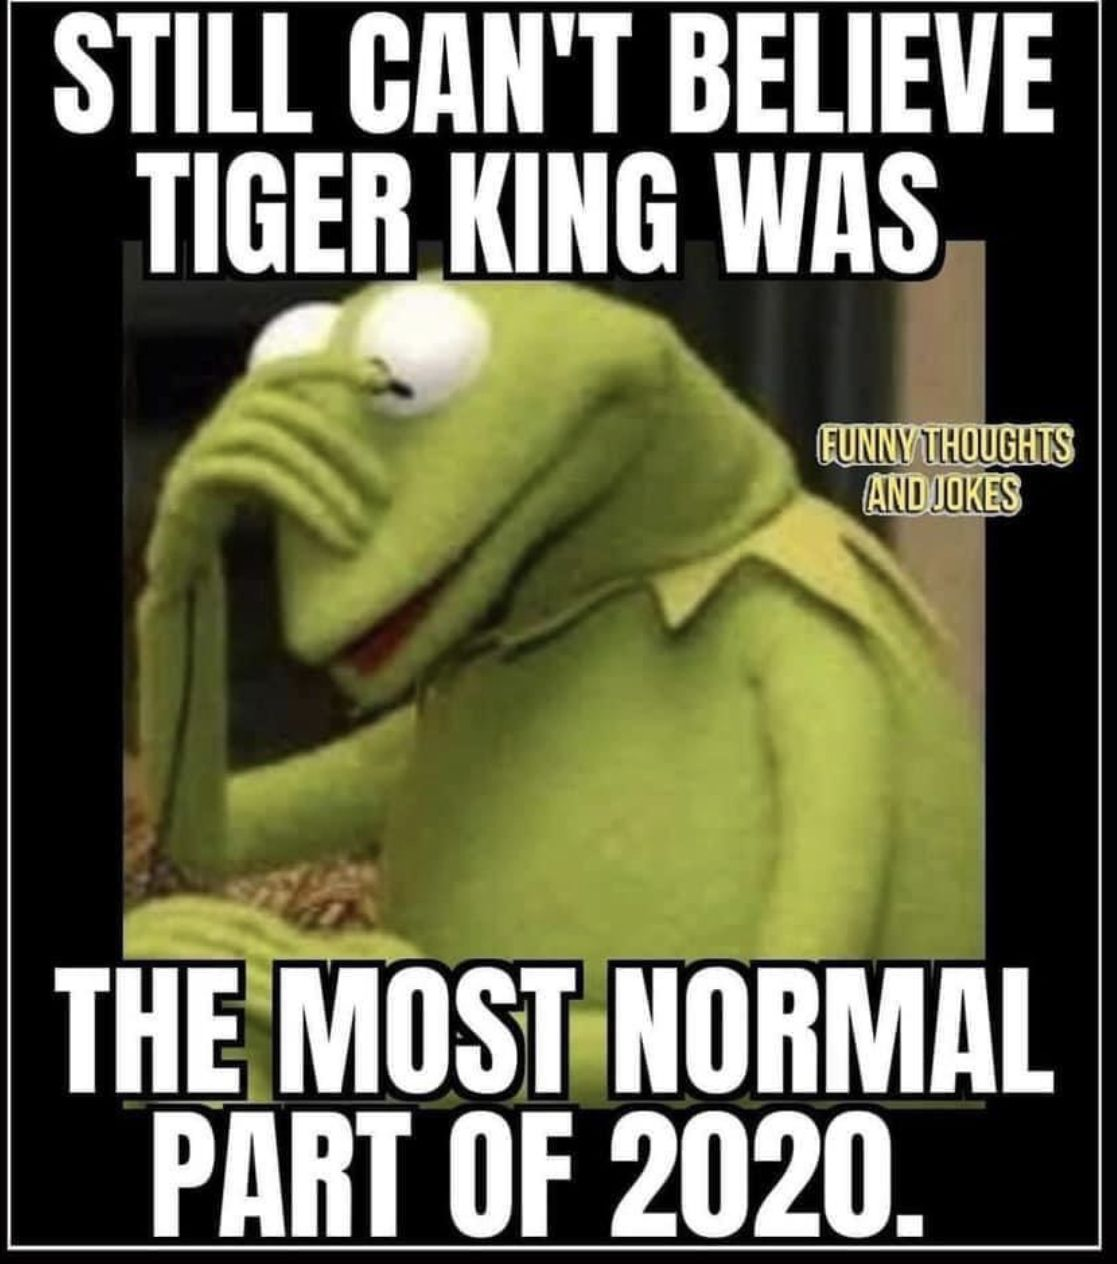 I Never Even Saw It In 2021 Funny Funny Thoughts Haha Funny